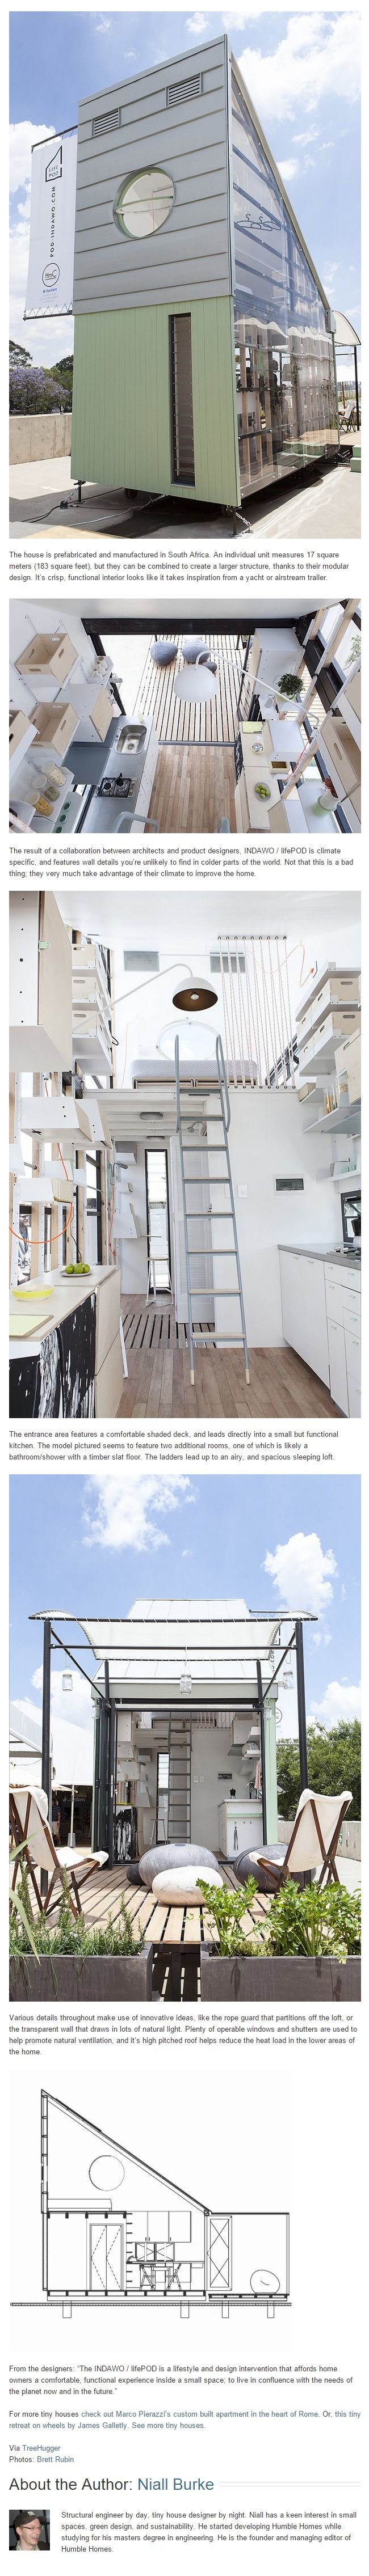 INDAWO / lifePOD – A Modern Tiny House from South Africa——This tiny prefab house is designed by architects, Collaborat000. Based in South Africa, INDAWO / lifePOD takes a different route than the majority of tiny houses out there – it's a modern building that favors practicality over charm. ( via http://humble-homes.com/indawo-lifepod-modern-tiny-house-south-africa )